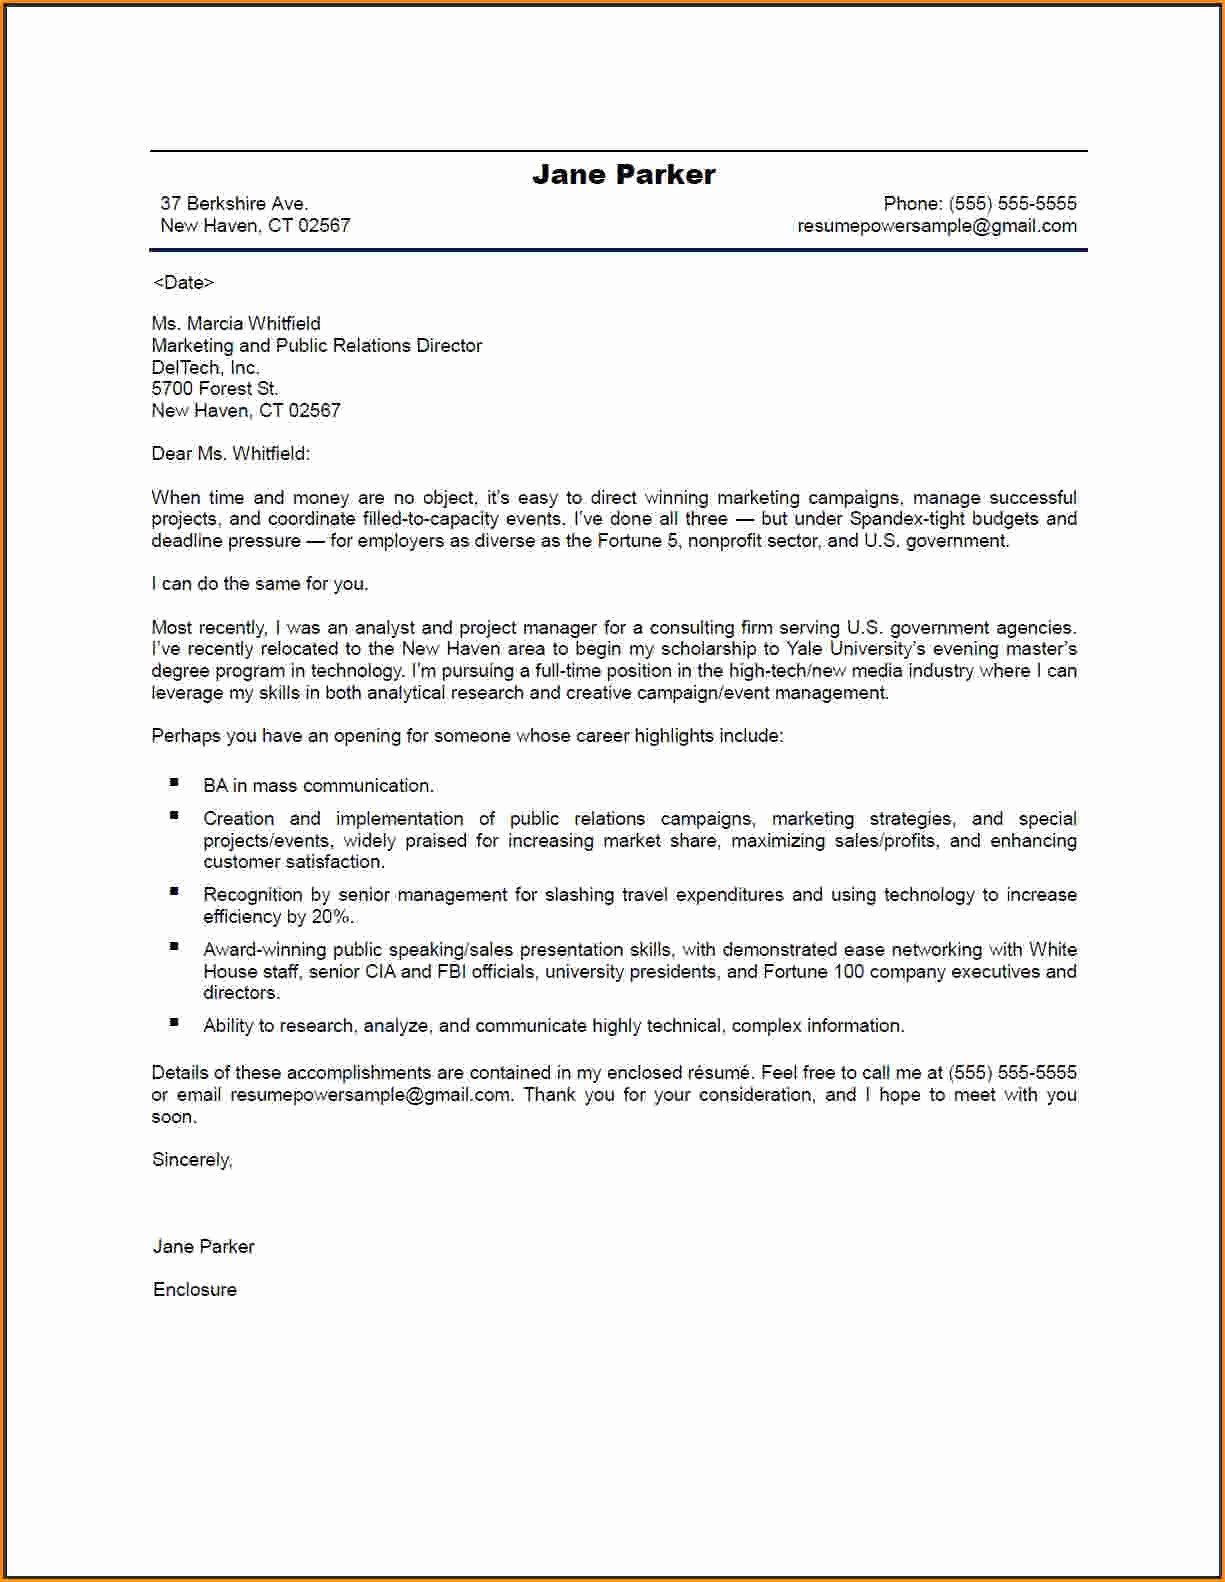 Resume and Cover Letter Templates Elegant 4 Good Cover Letters for Resume